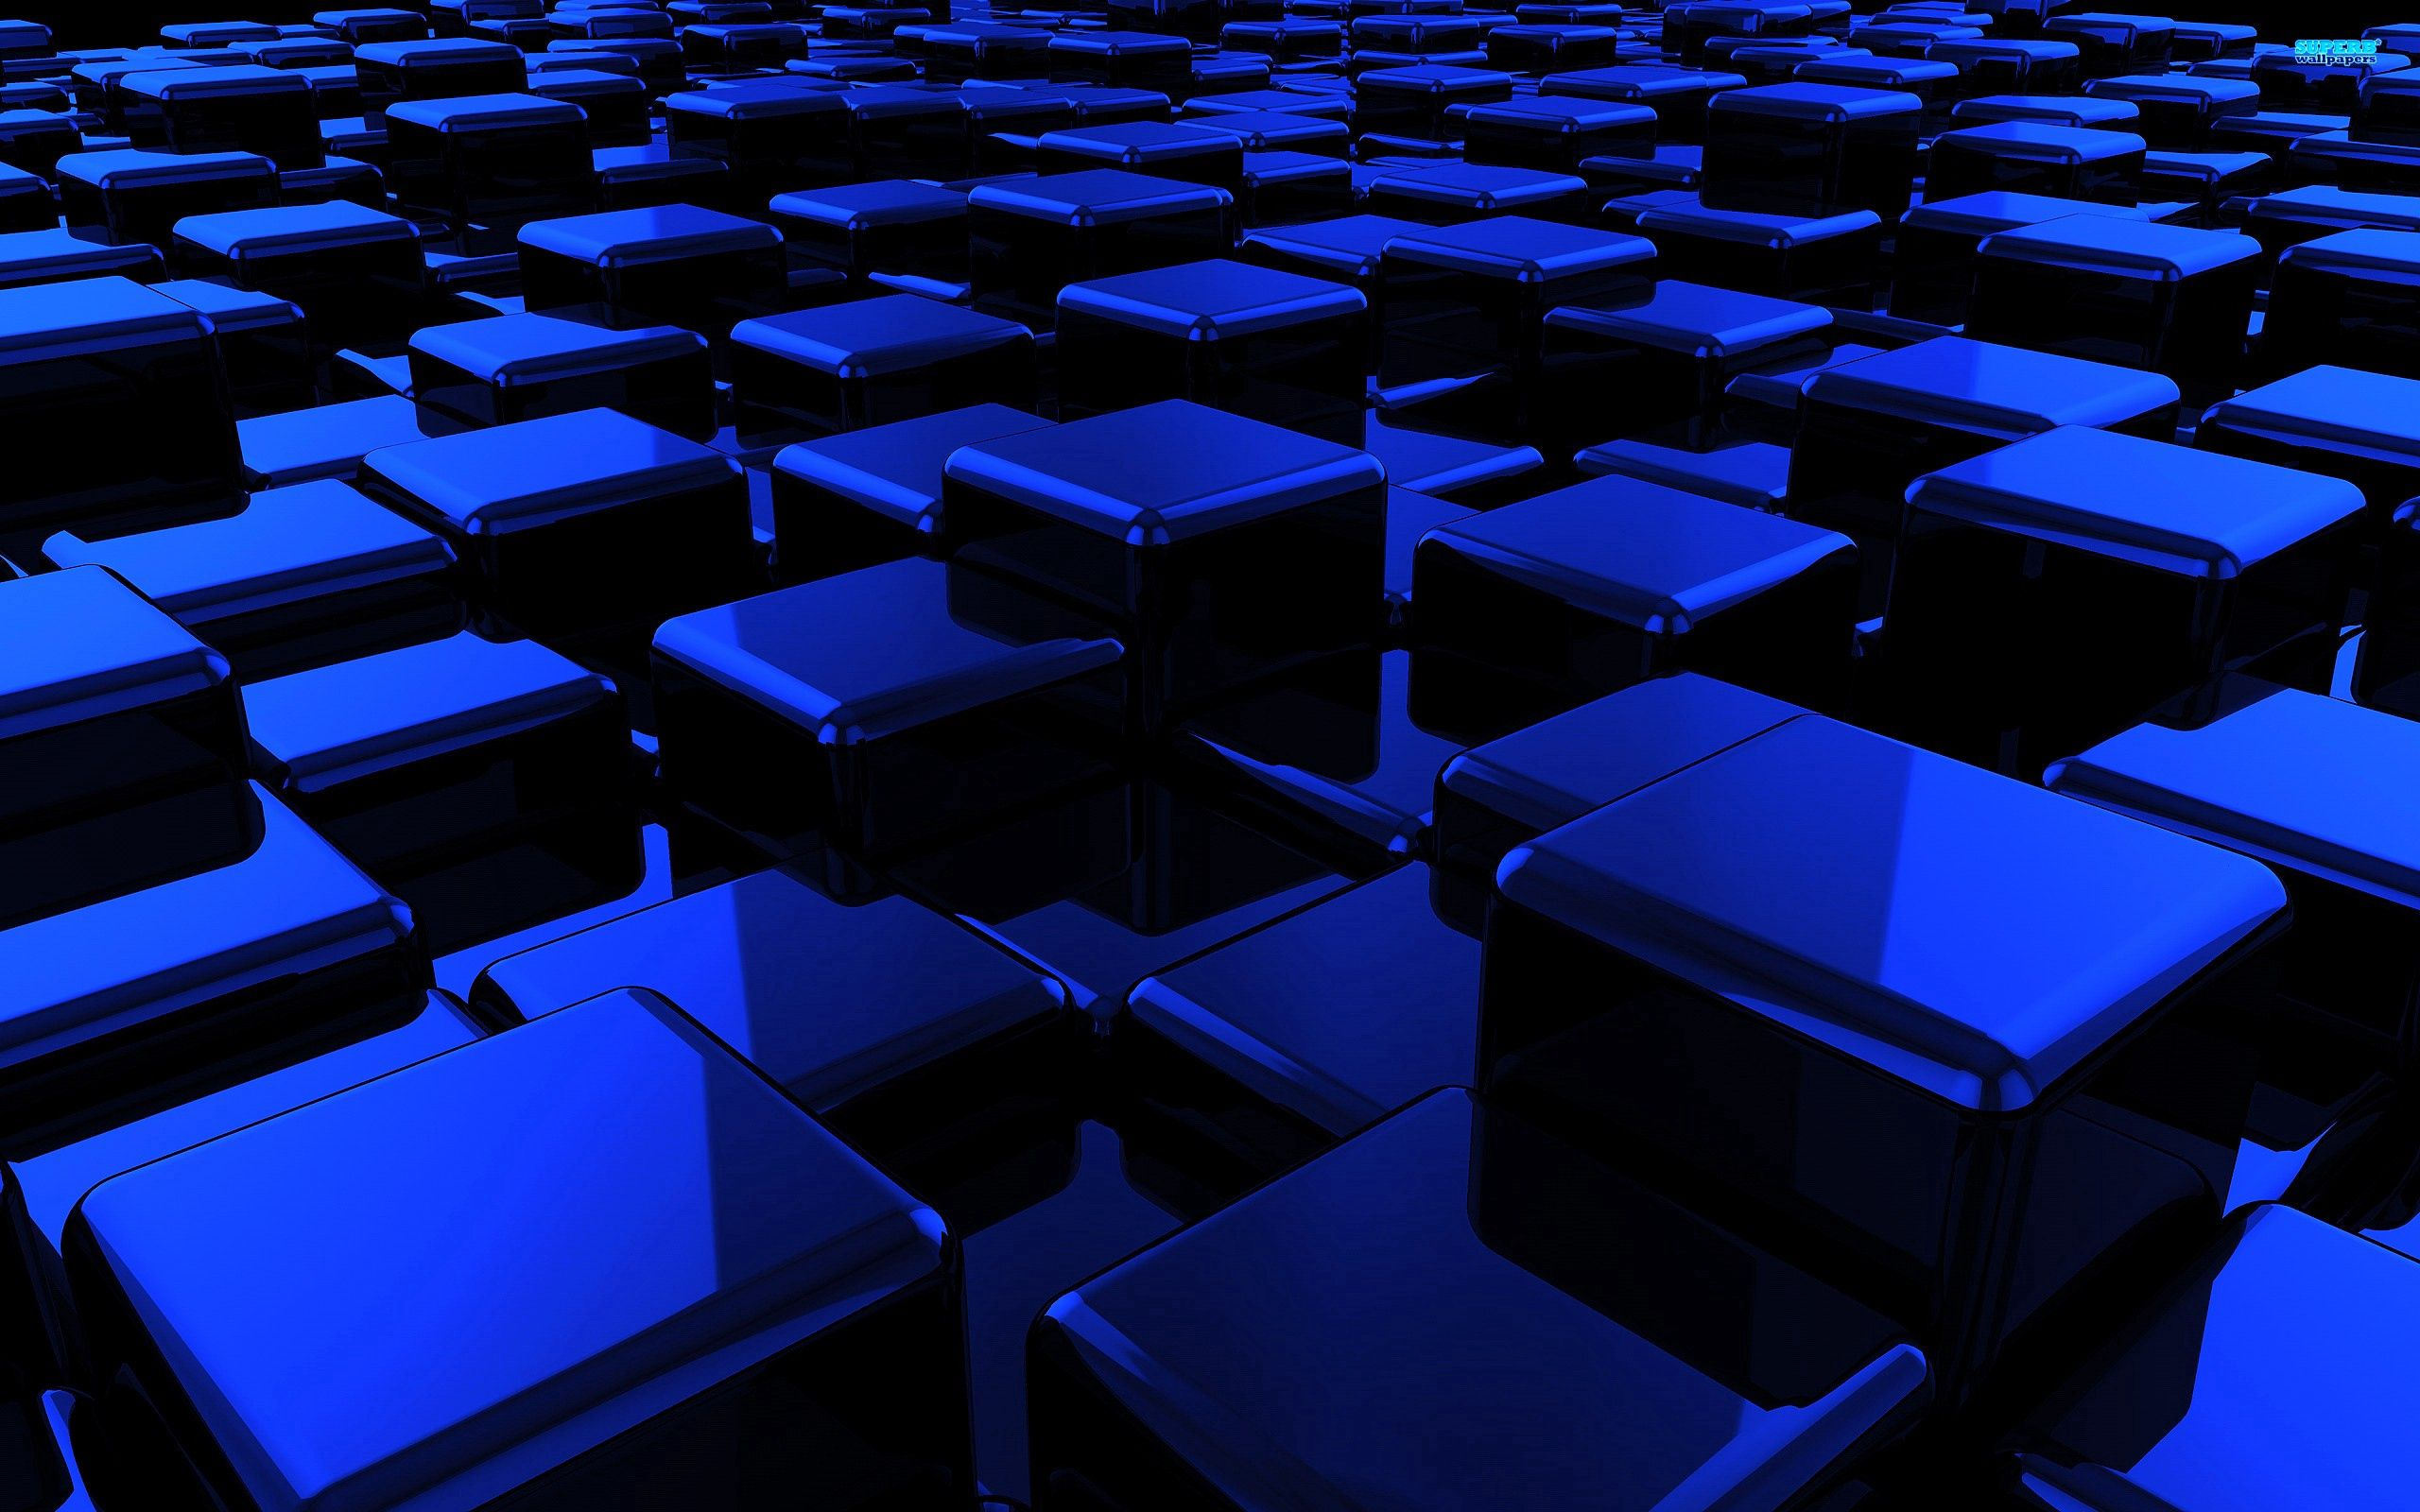 93858 download wallpaper 3D, Surface, Shadow, Squares, Cube screensavers and pictures for free